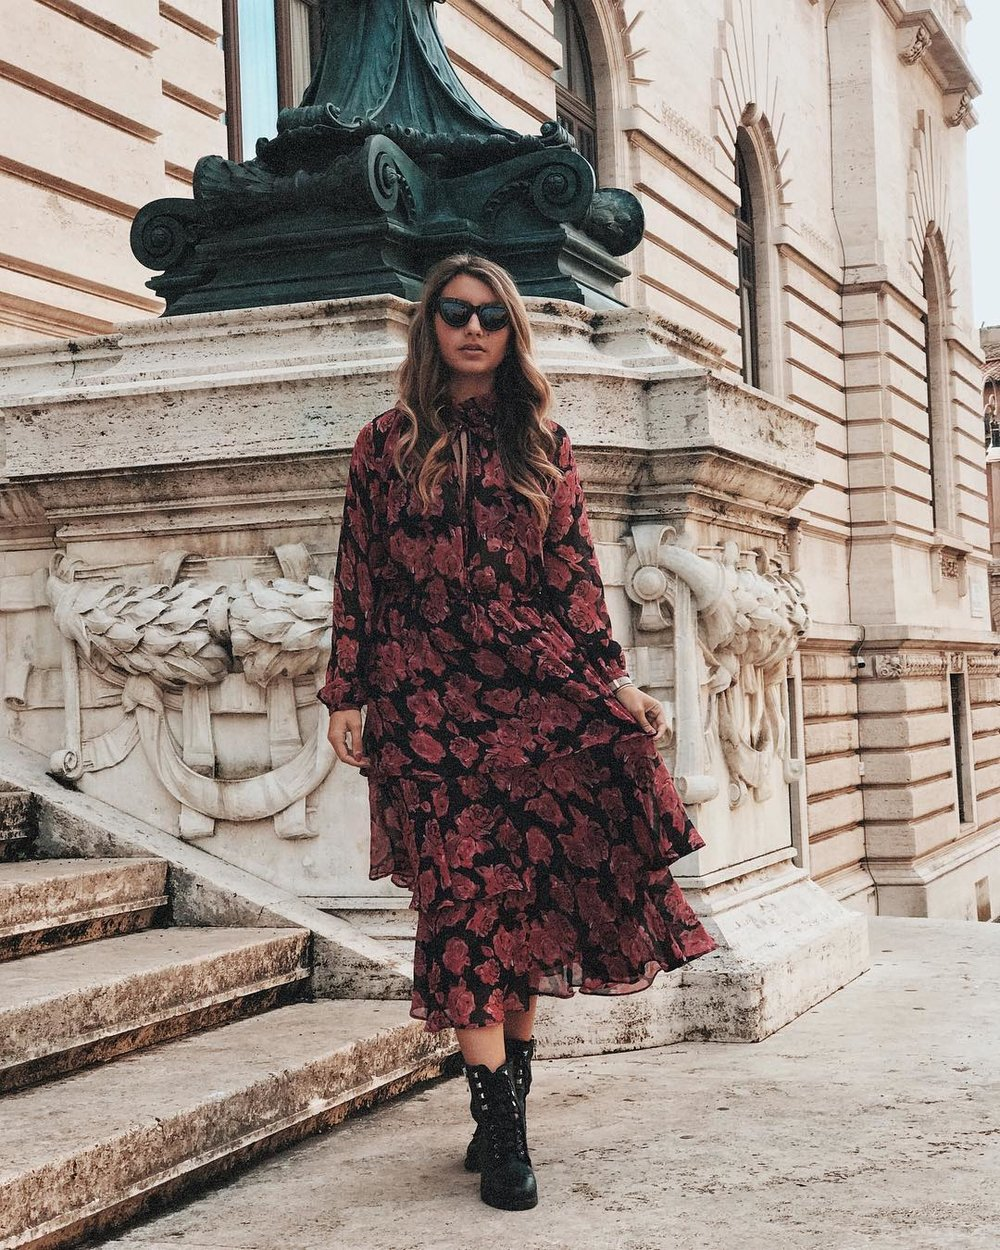 Try long dresses with dark blooms